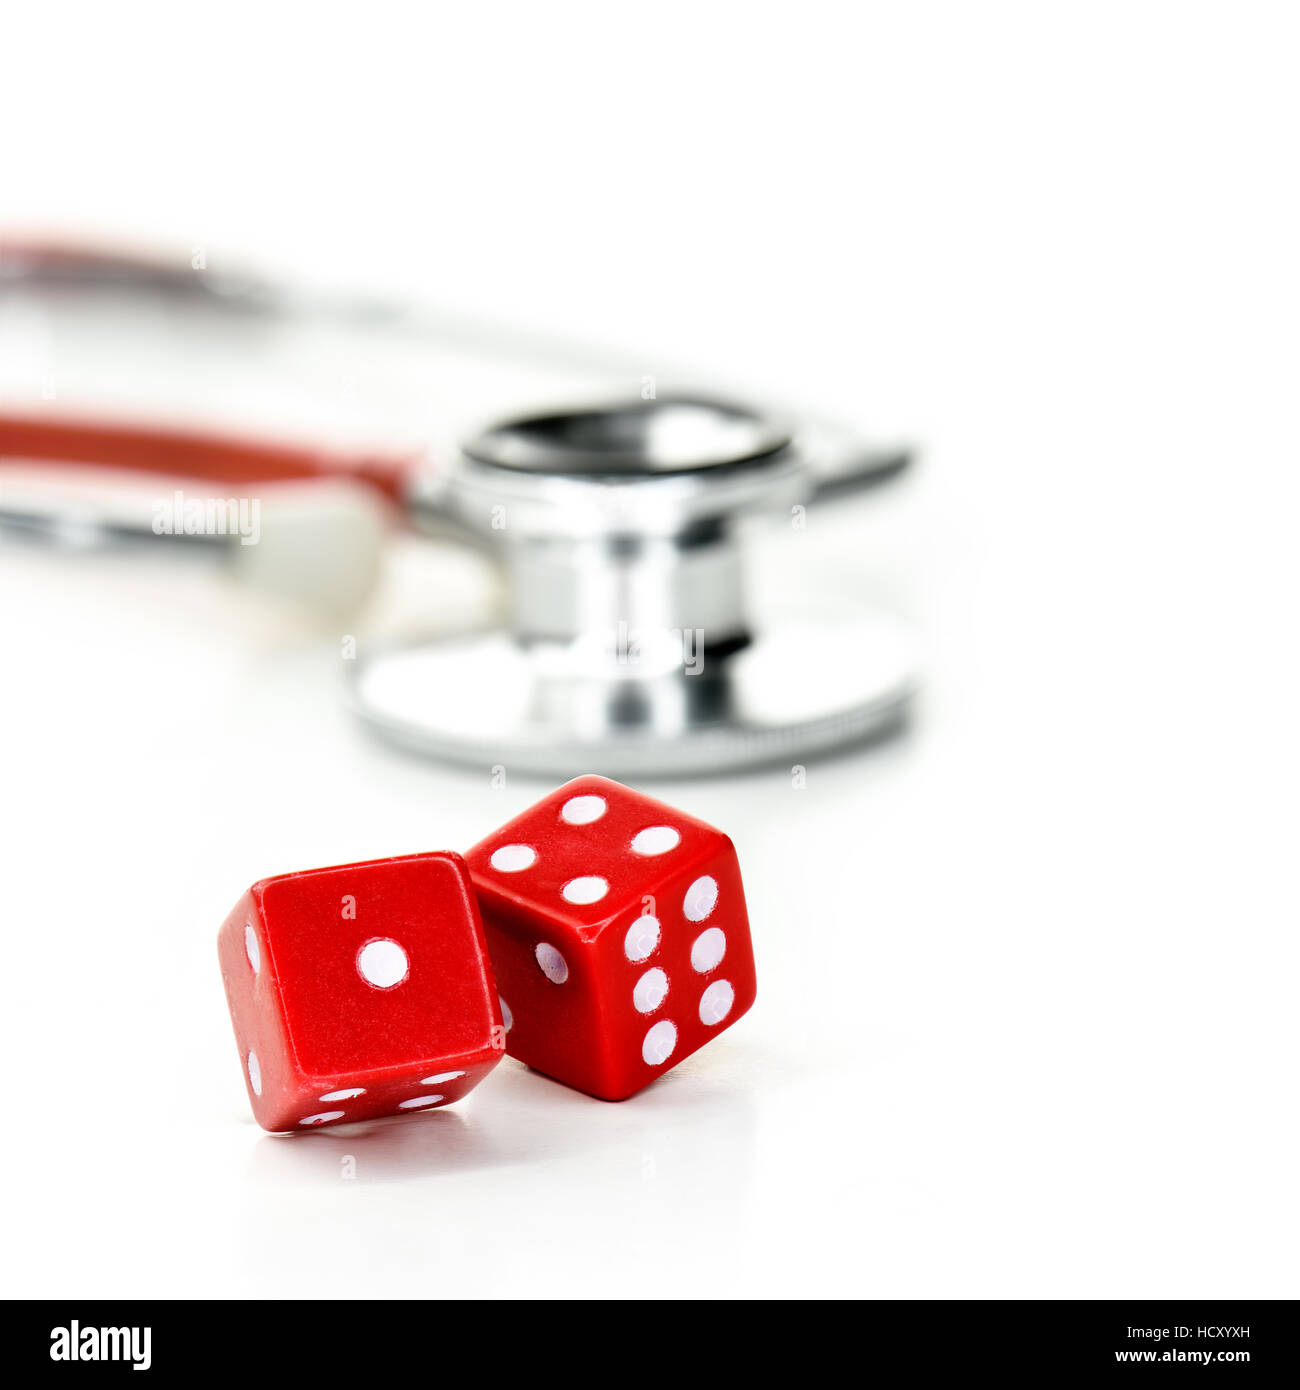 Two red dice and stethoscope with copy space. Concept image for postcode lottery health care, receiving better heal - Stock Image